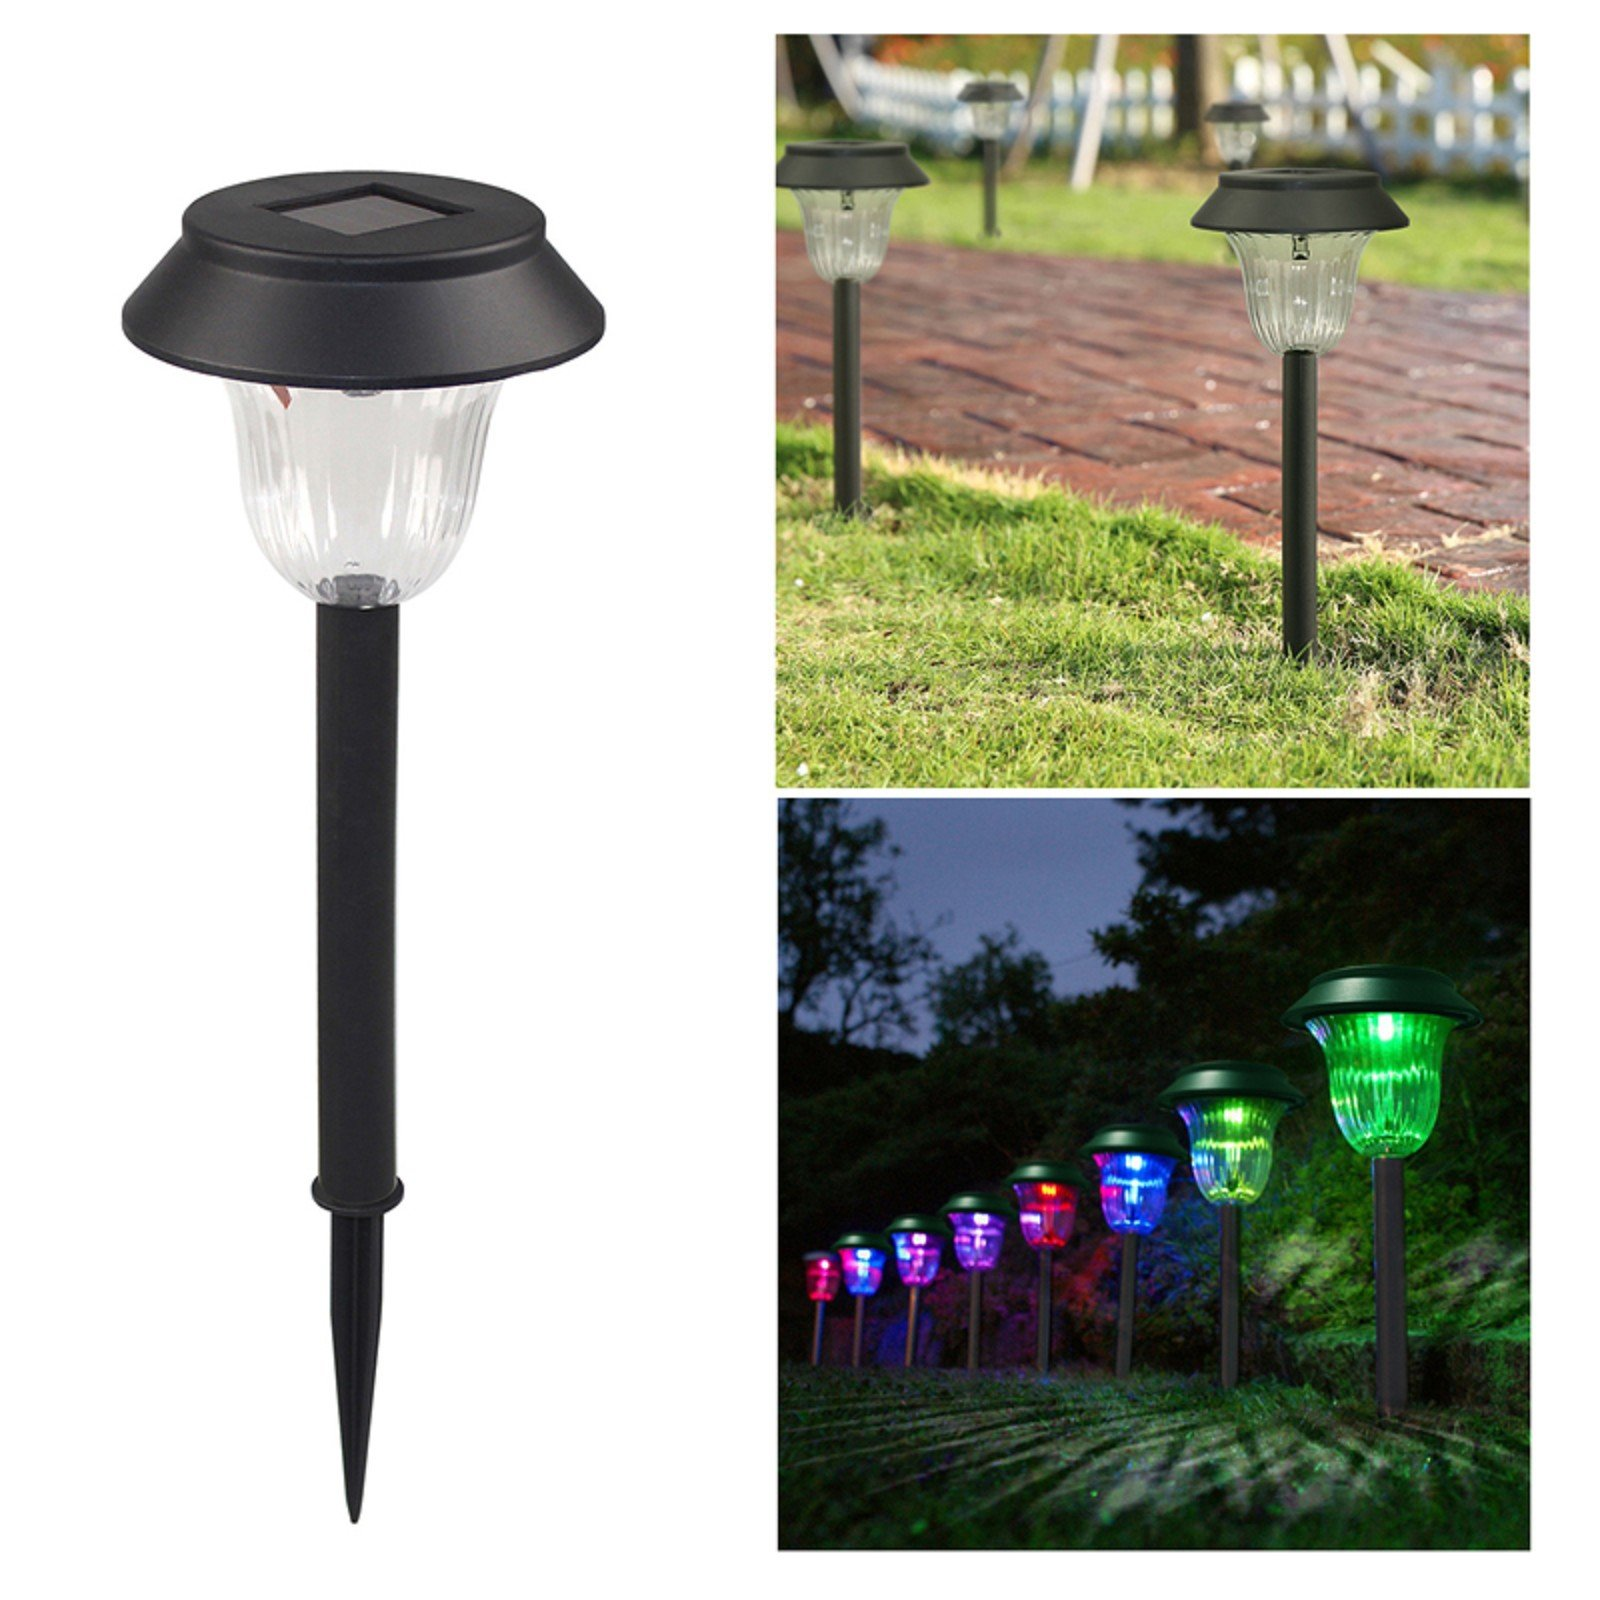 MZS Tec 2/4/6 Pack Led Solar Lights, Outdoor Pathway Garden Stake Light, 8-10 Lumens LED Lawn Walkway Lamp Path Yard Night Lights (6 Pack, Color Change)